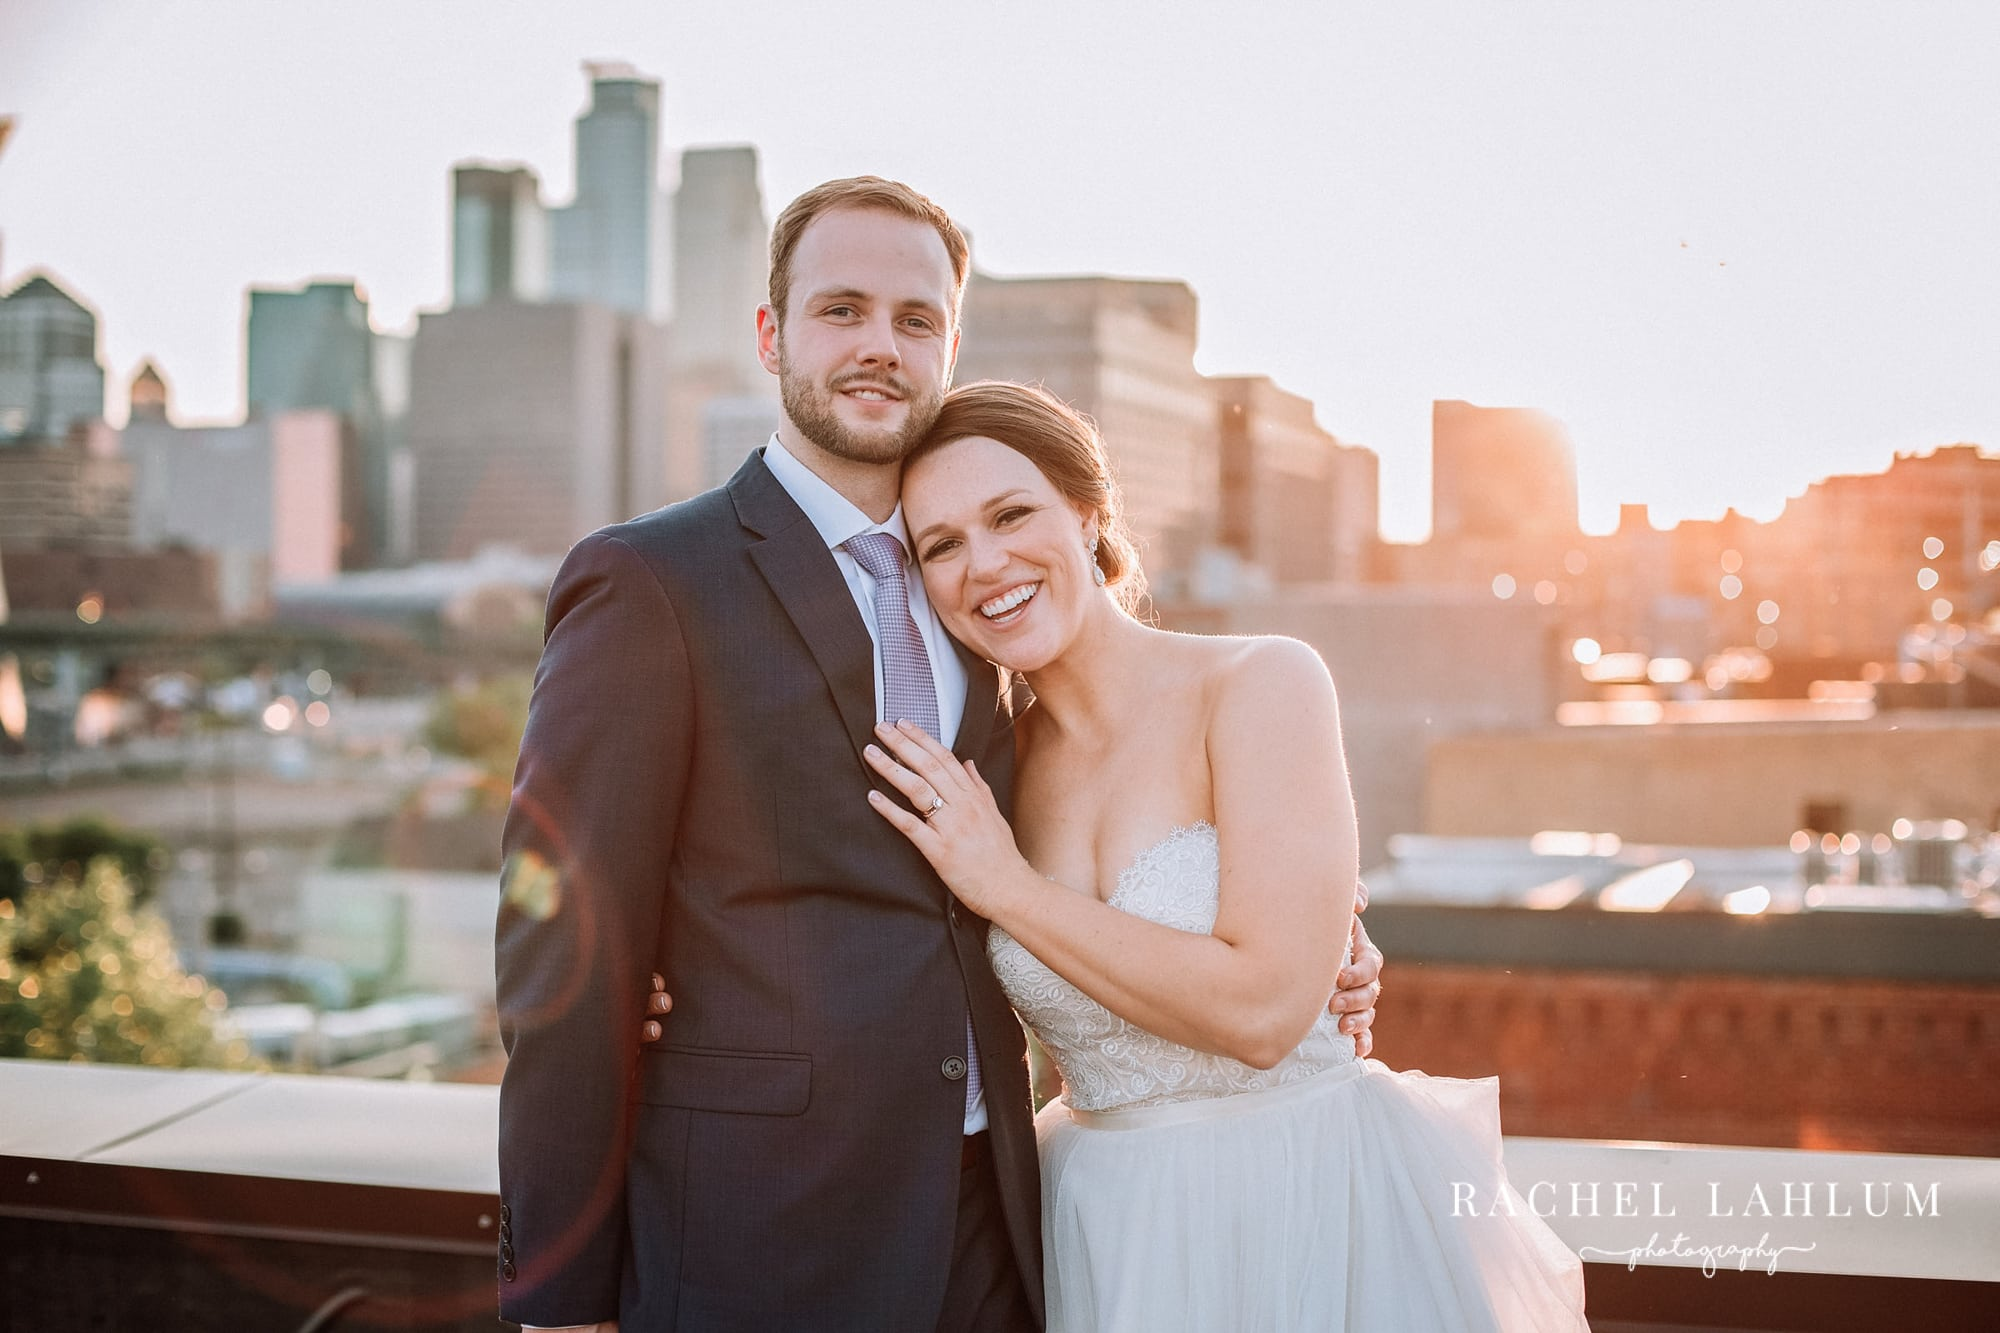 Wedding portrait in front of Minneapolis skyline at sunset.